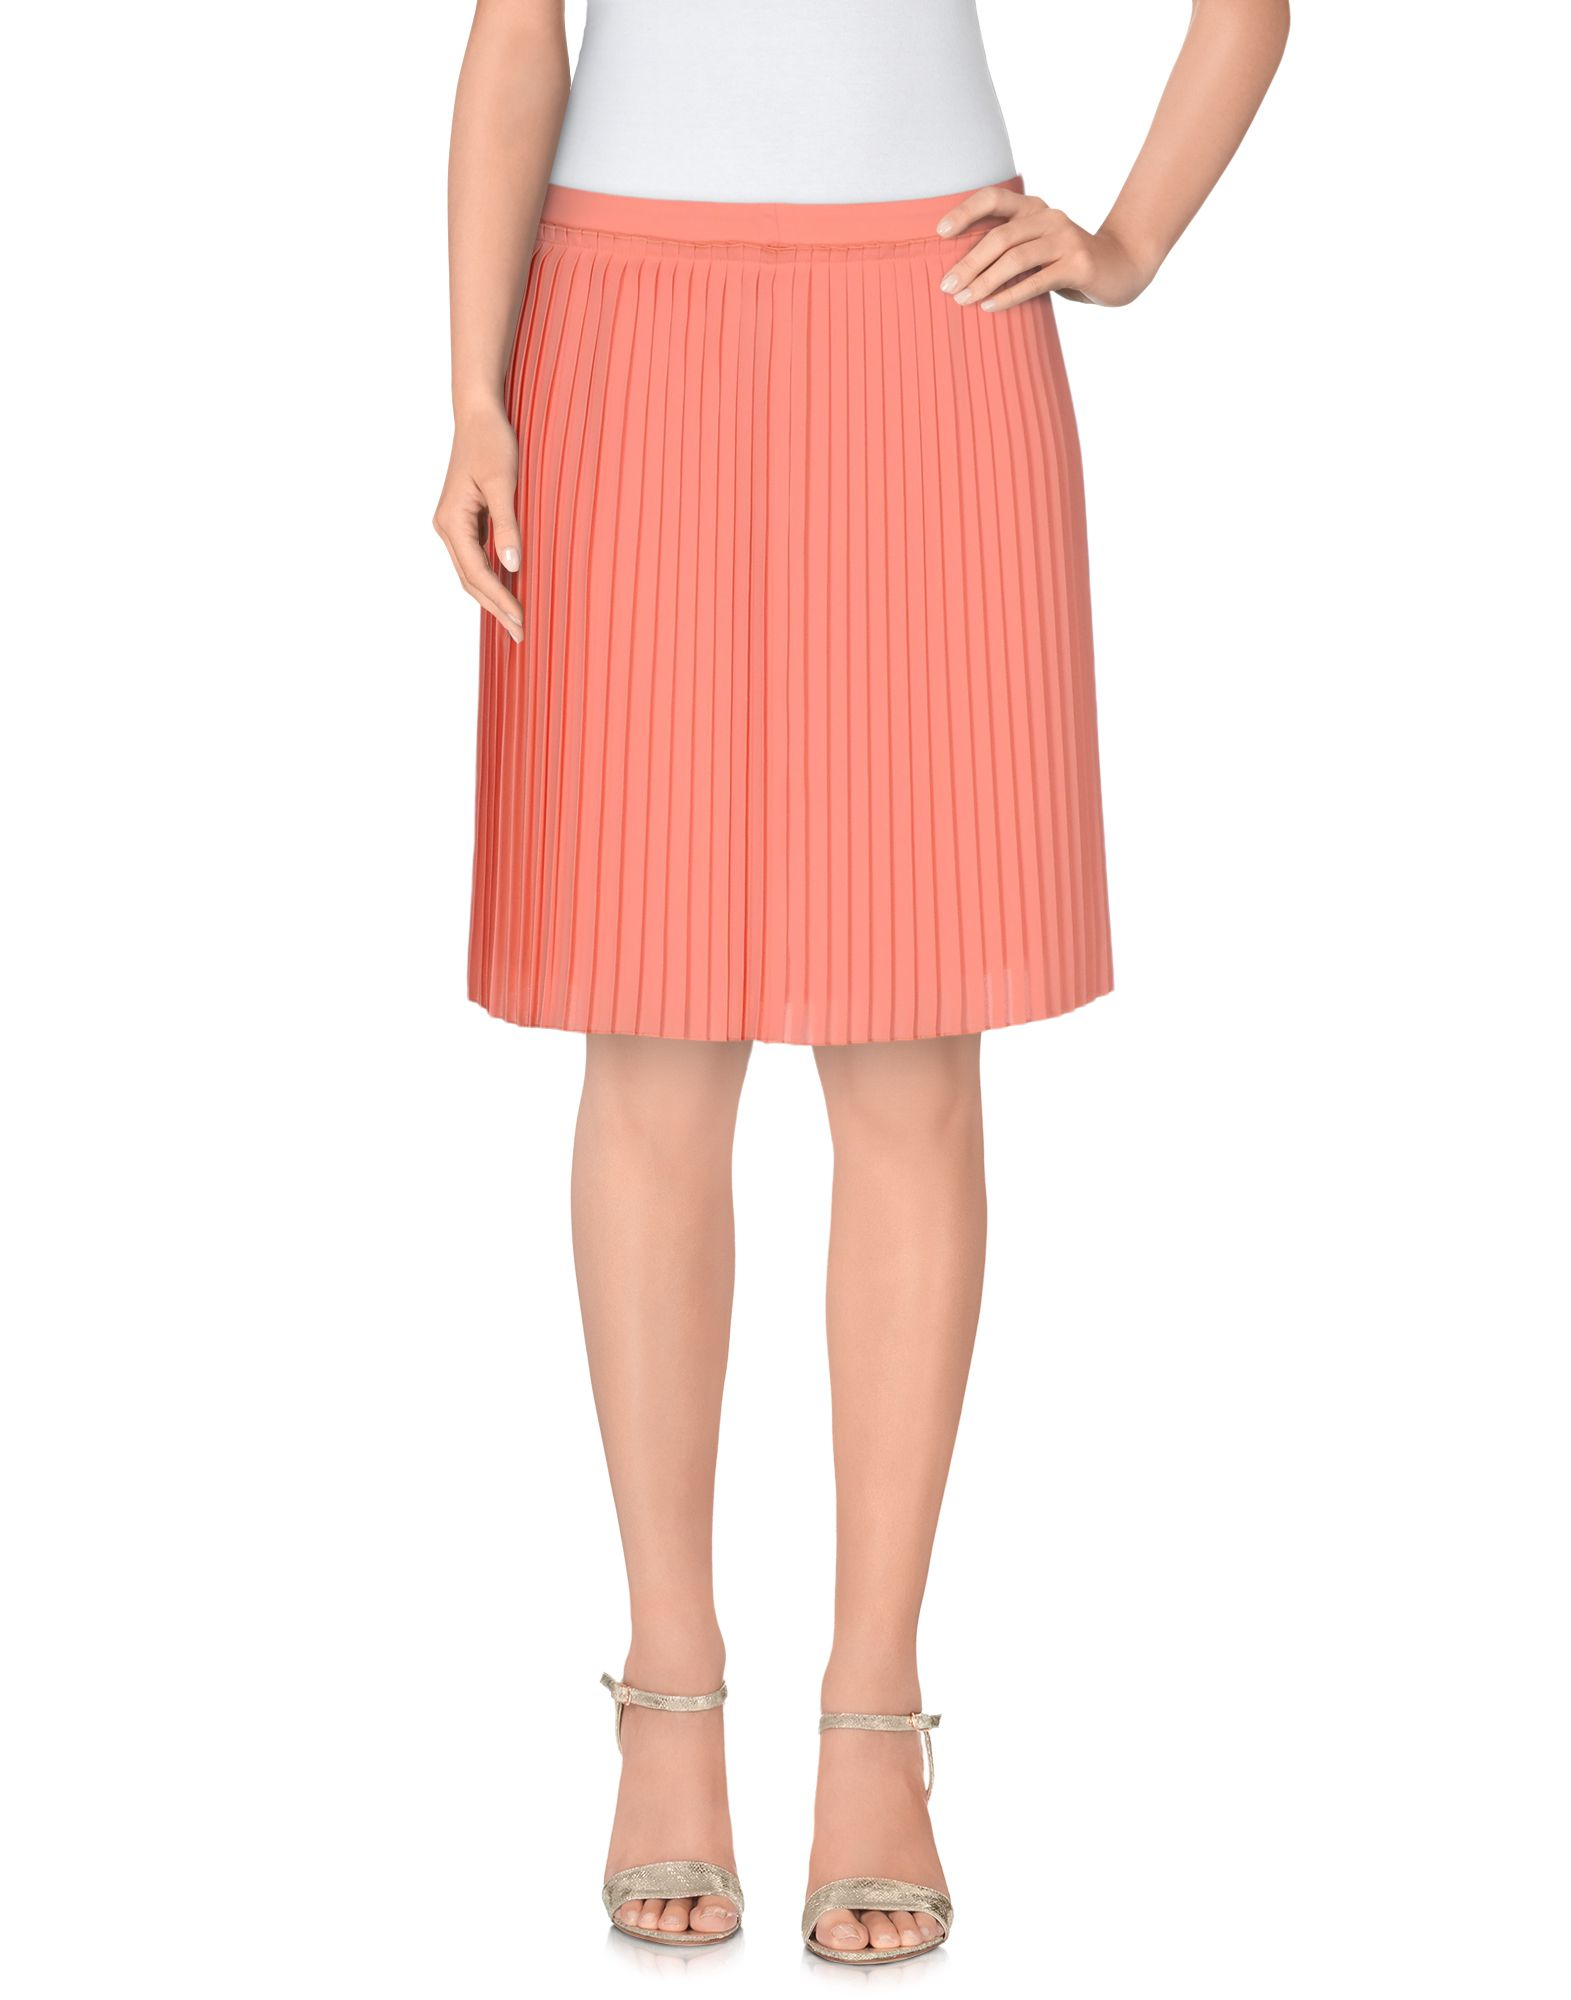 armani knee length skirt in pink salmon pink lyst